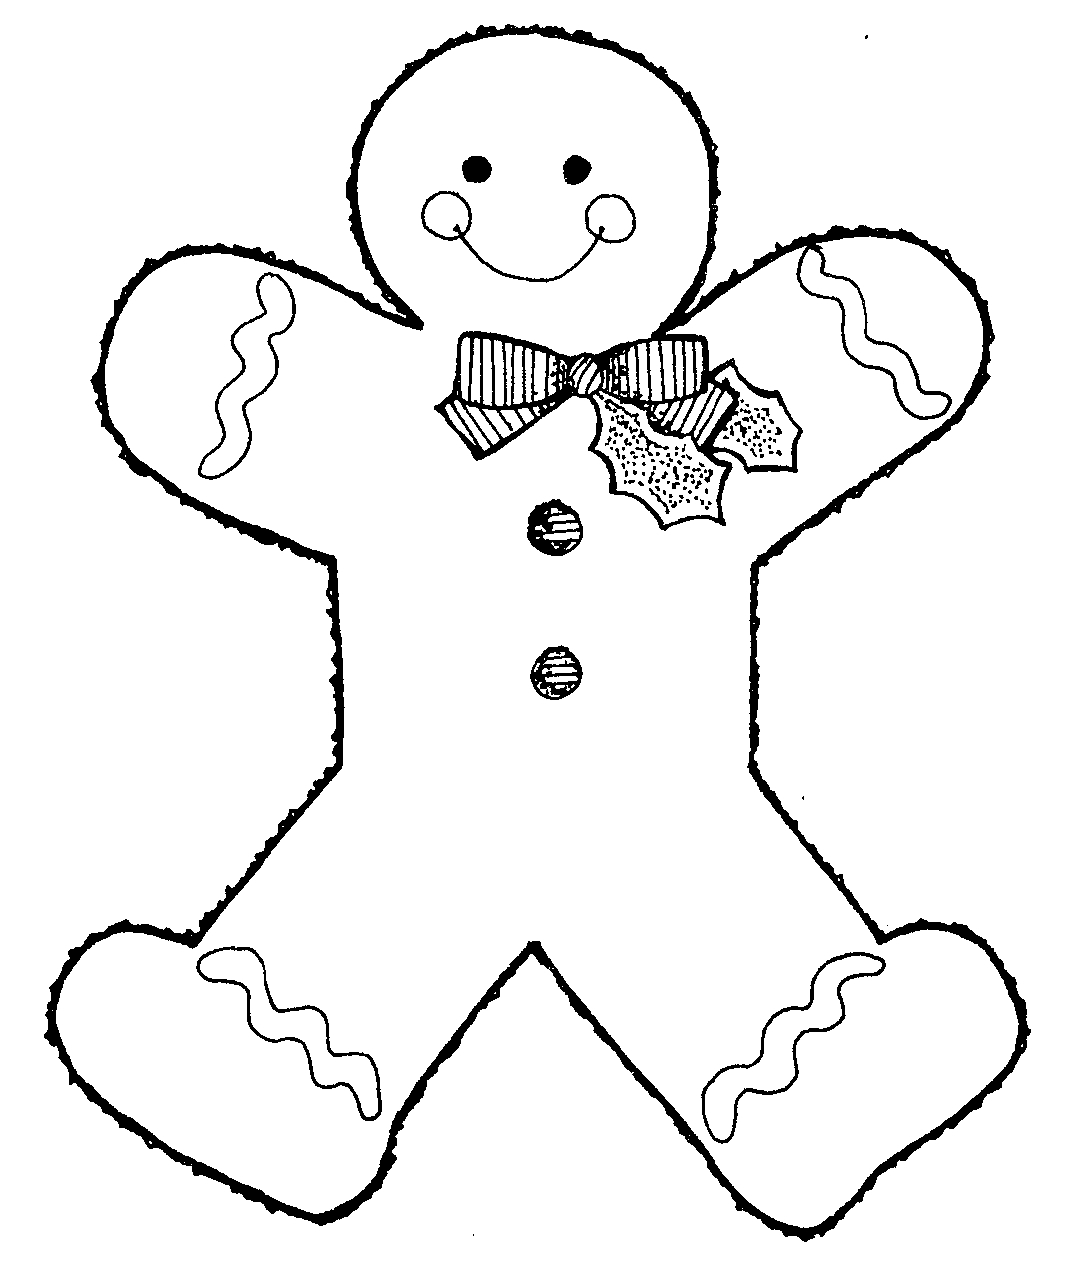 ginger man coloring pages - photo#26